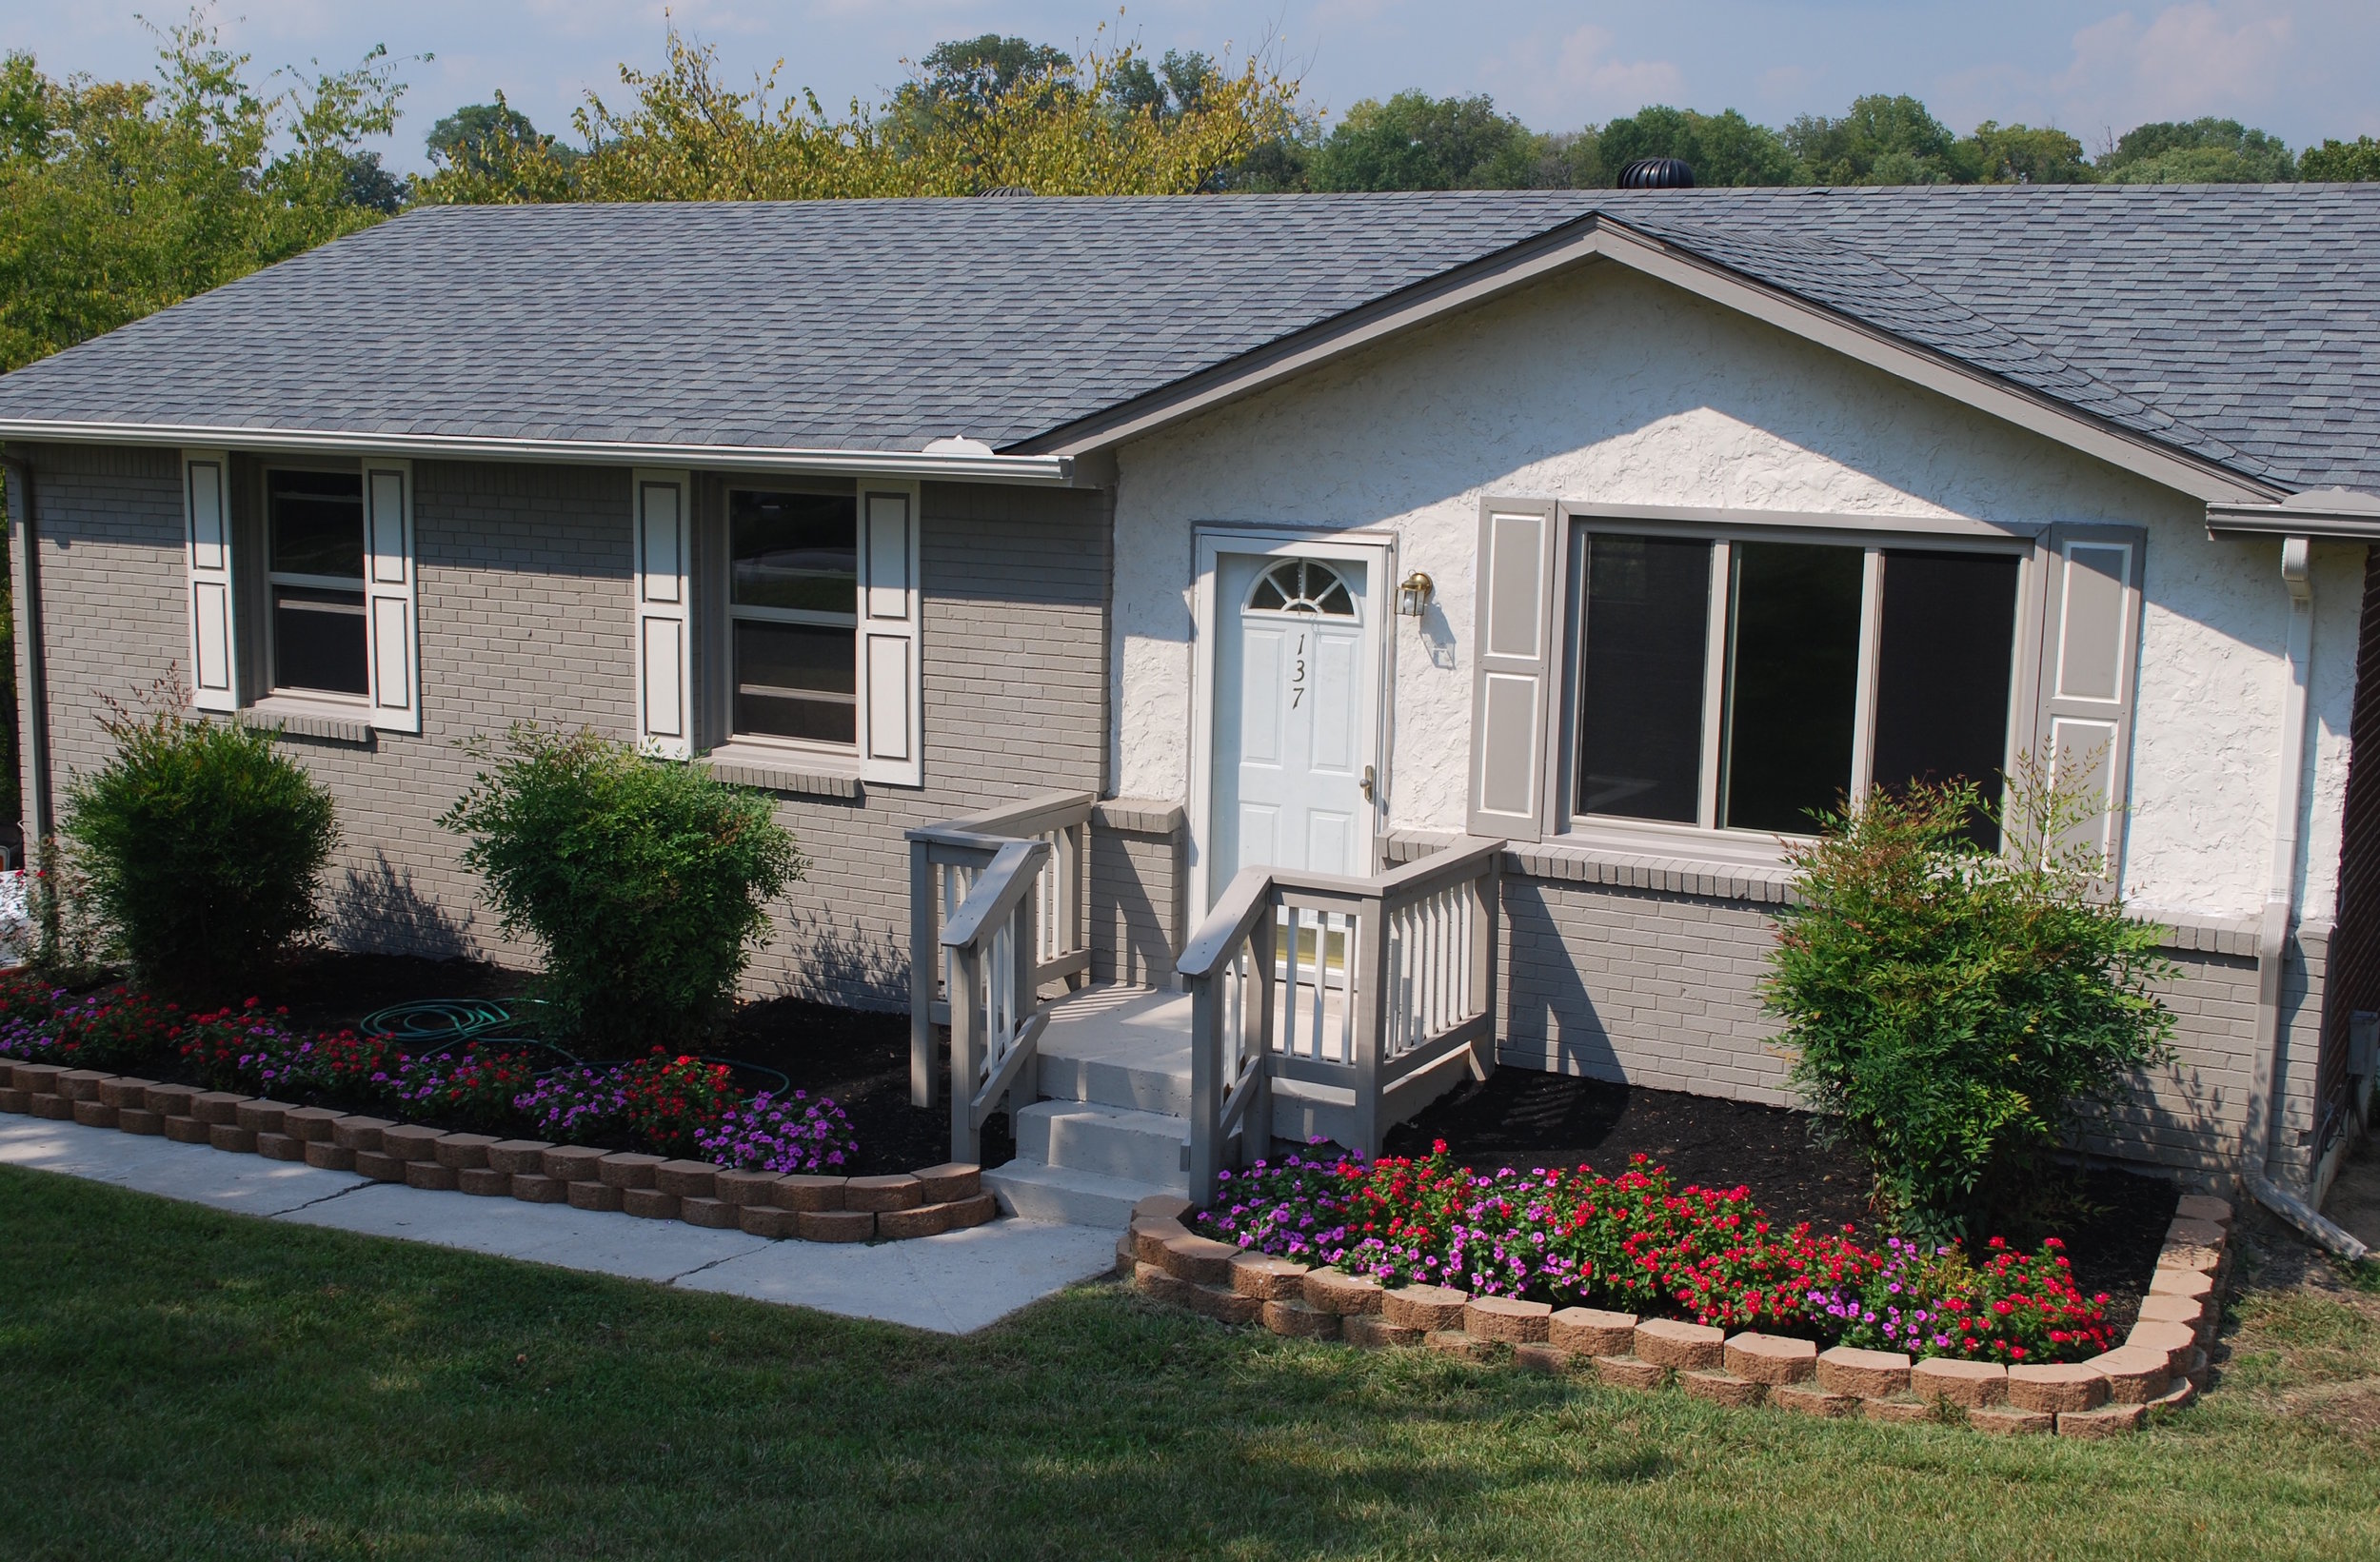 137 AVAILABLE Aug 15 HENDERSONVILLE: 137 Two Valley  Single Family Home: 3Br 1Ba